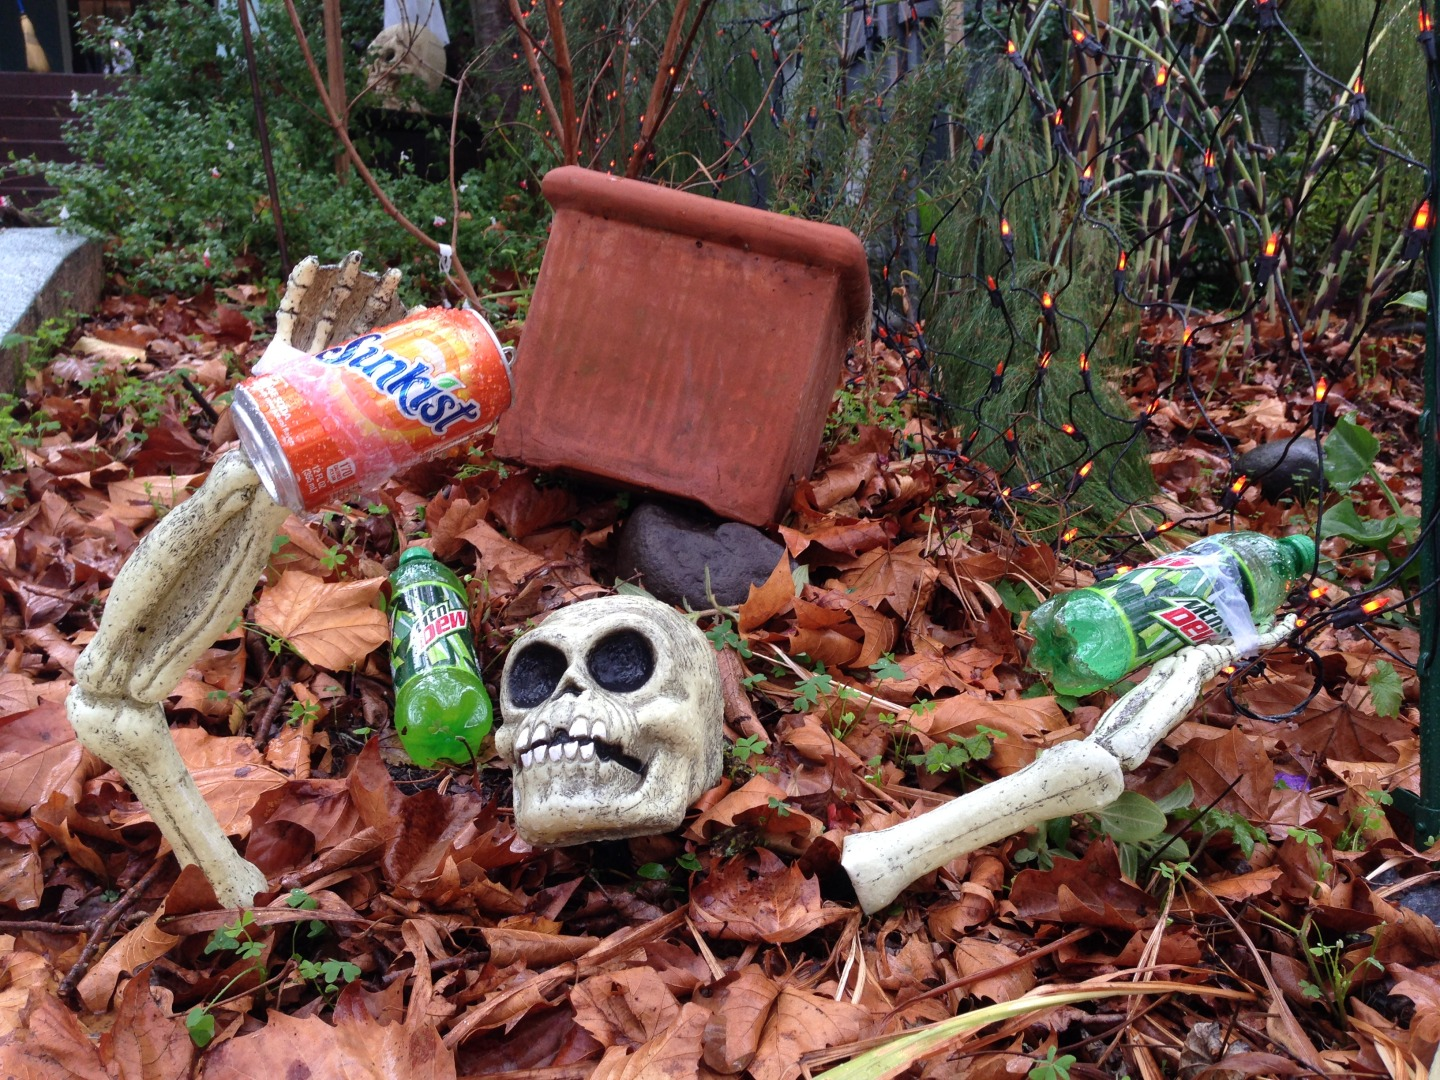 Support for the soda tax was widespread in Berkeley, even in Halloween displays. (Patricia Yollin/KQED)